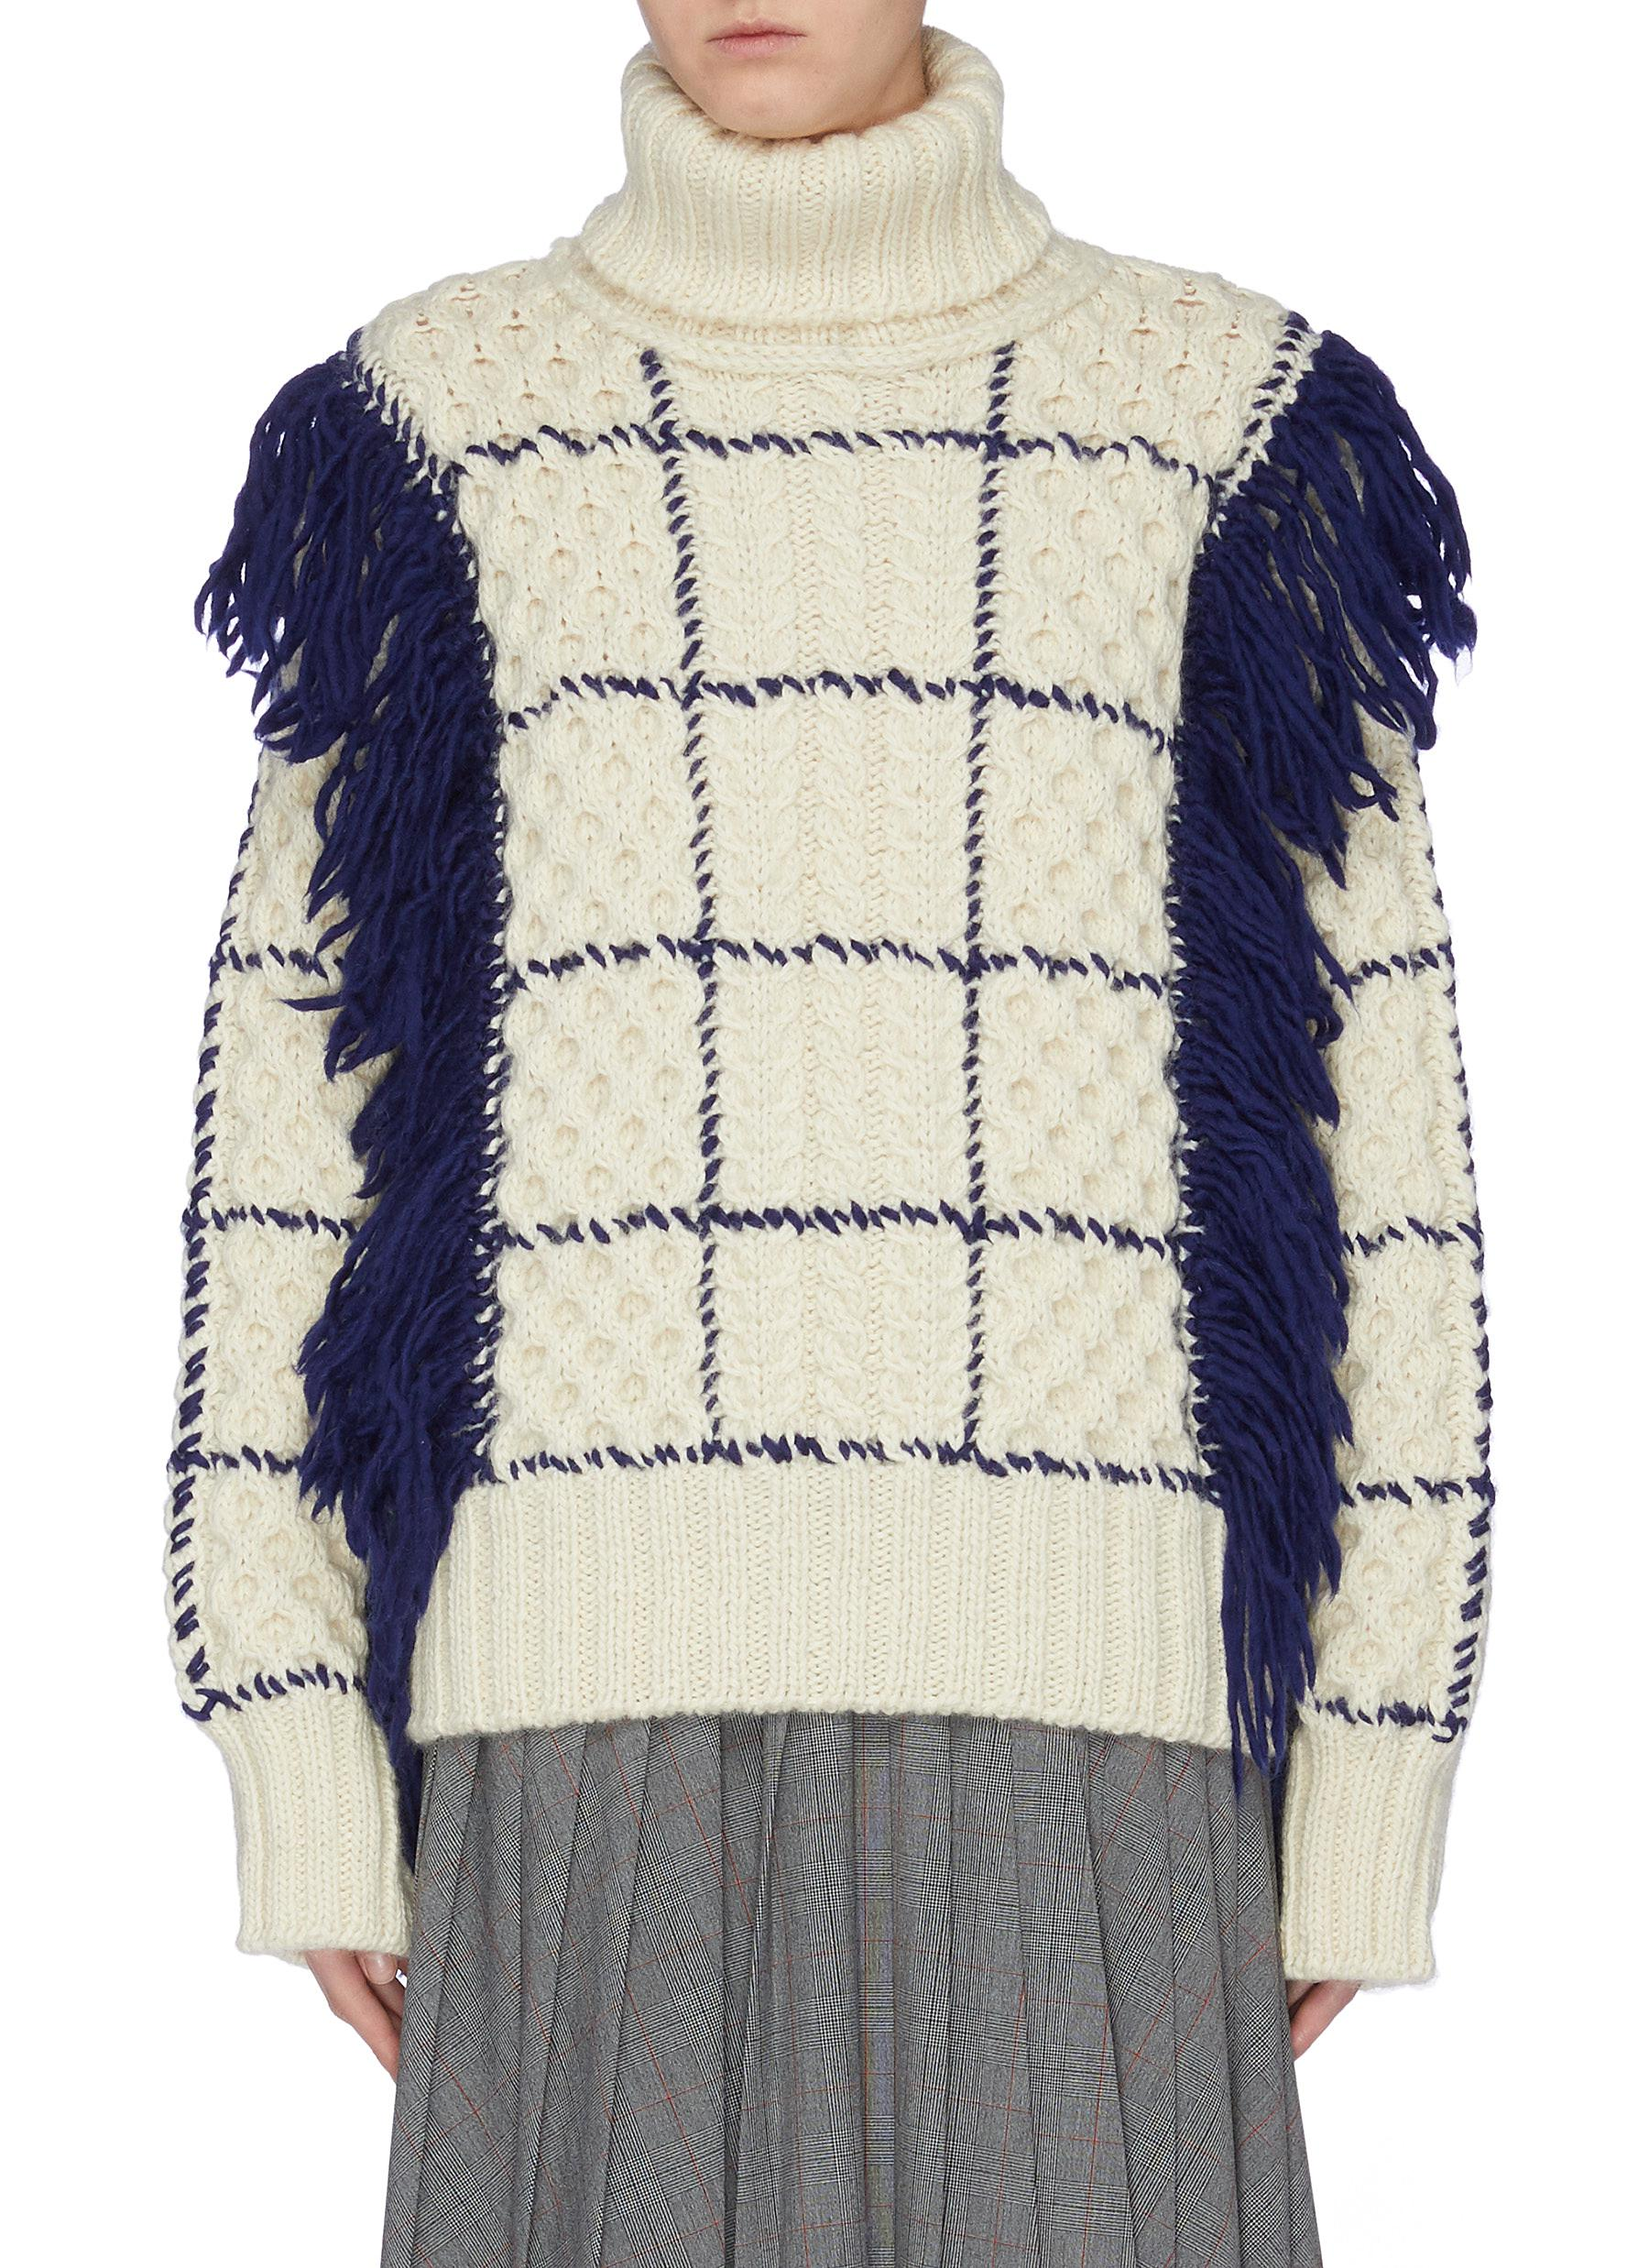 Fringe windowpane check cable knit turtleneck sweater by The Keiji